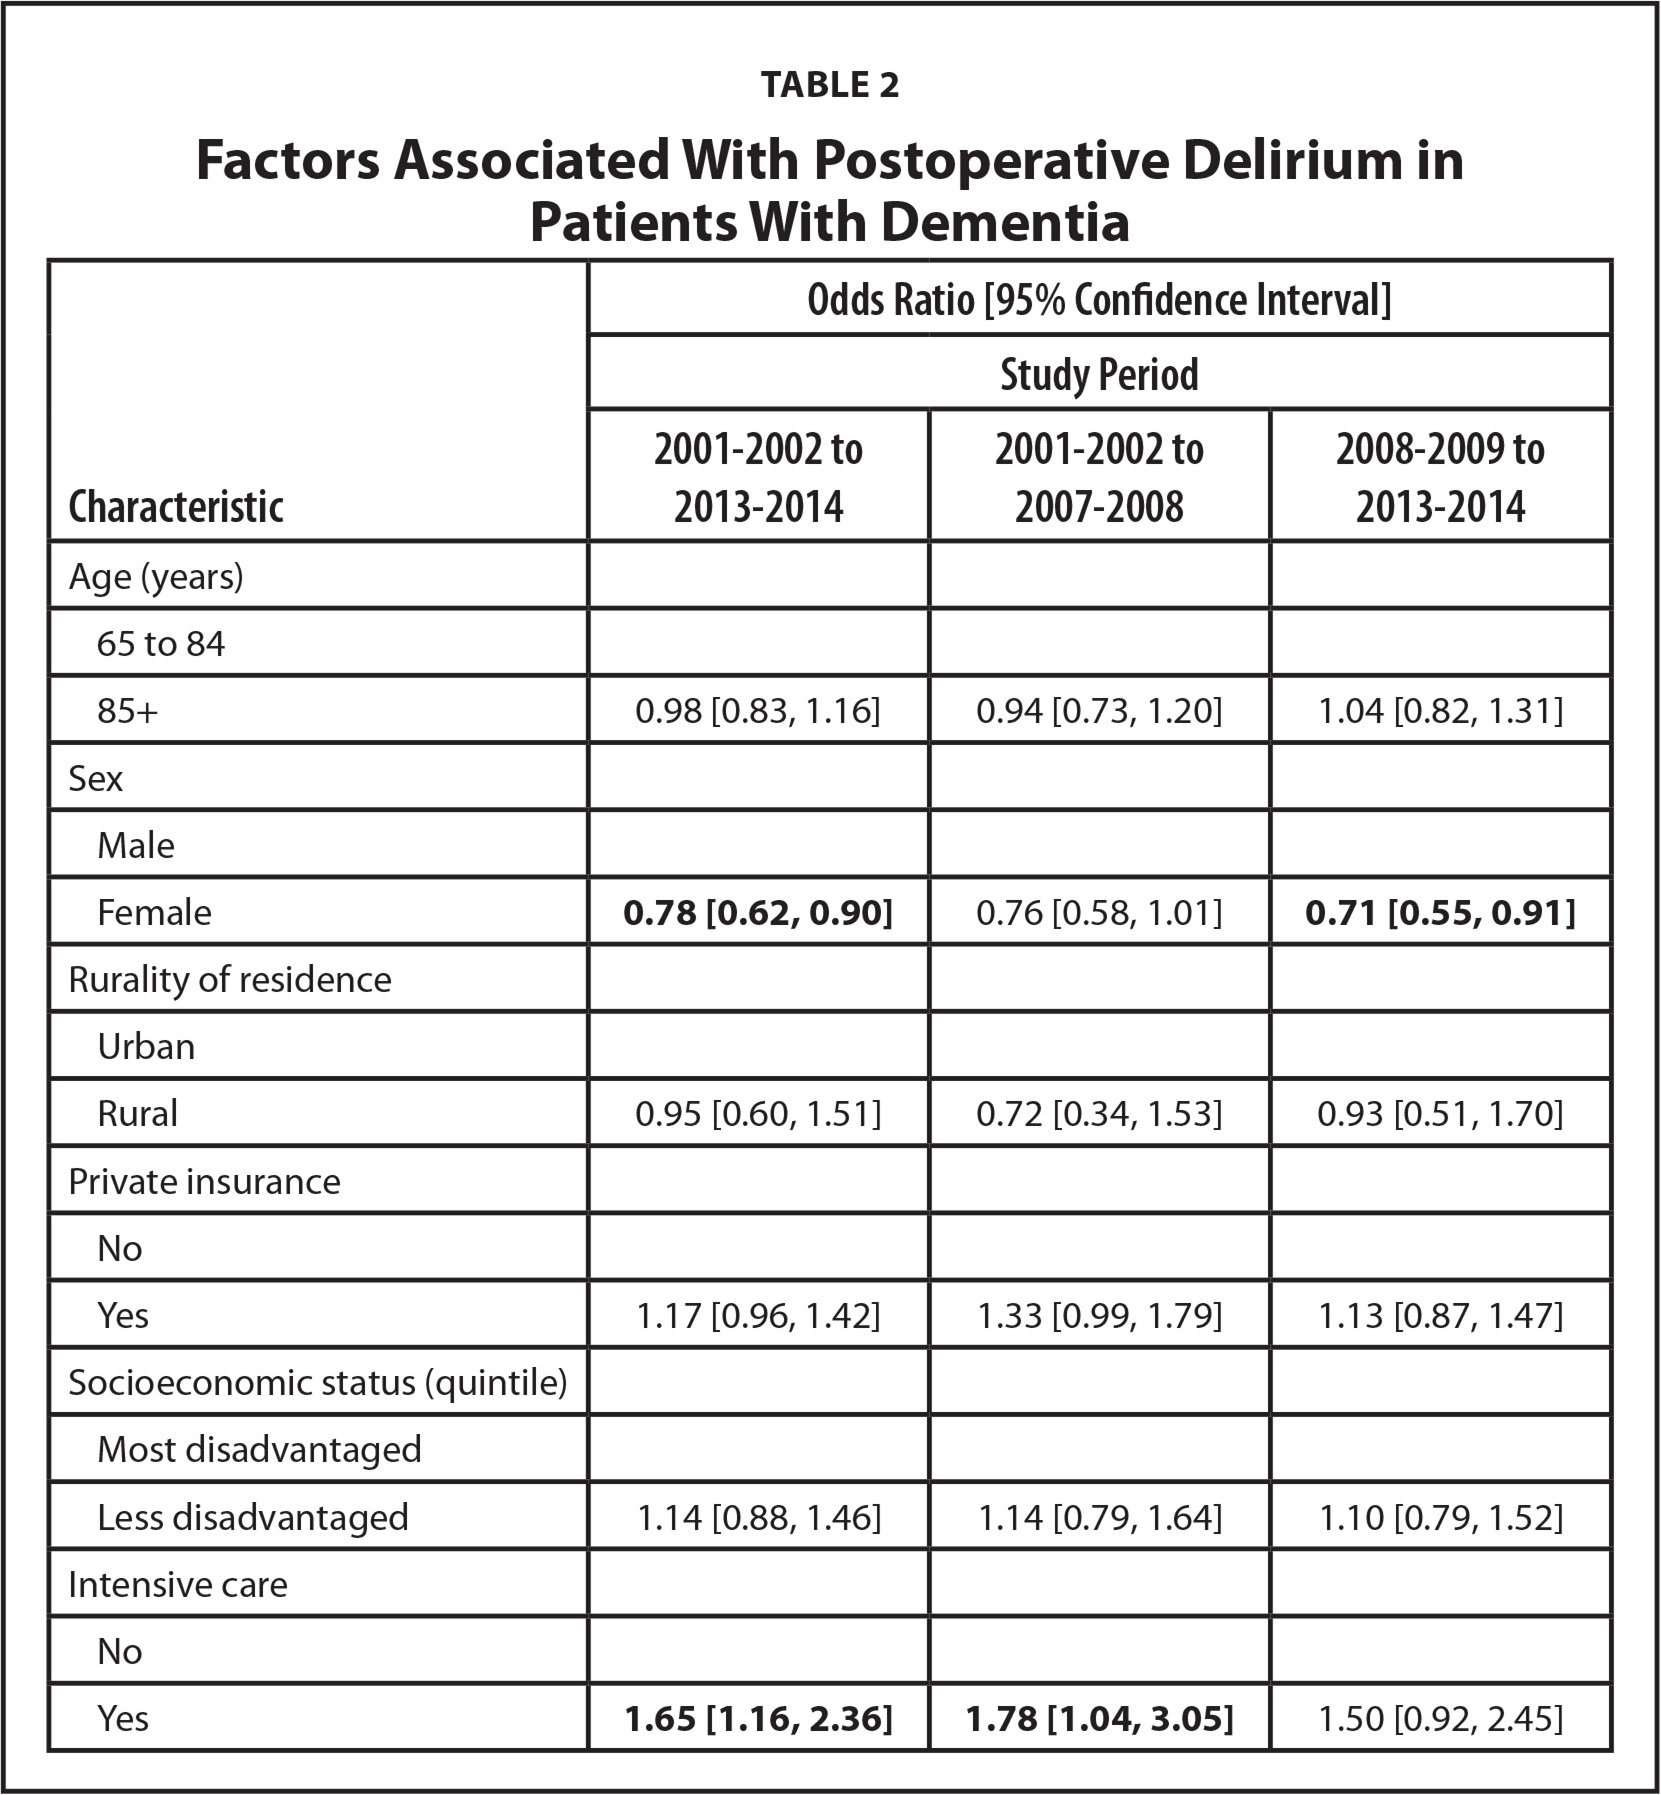 Factors Associated With Postoperative Delirium in Patients With Dementia